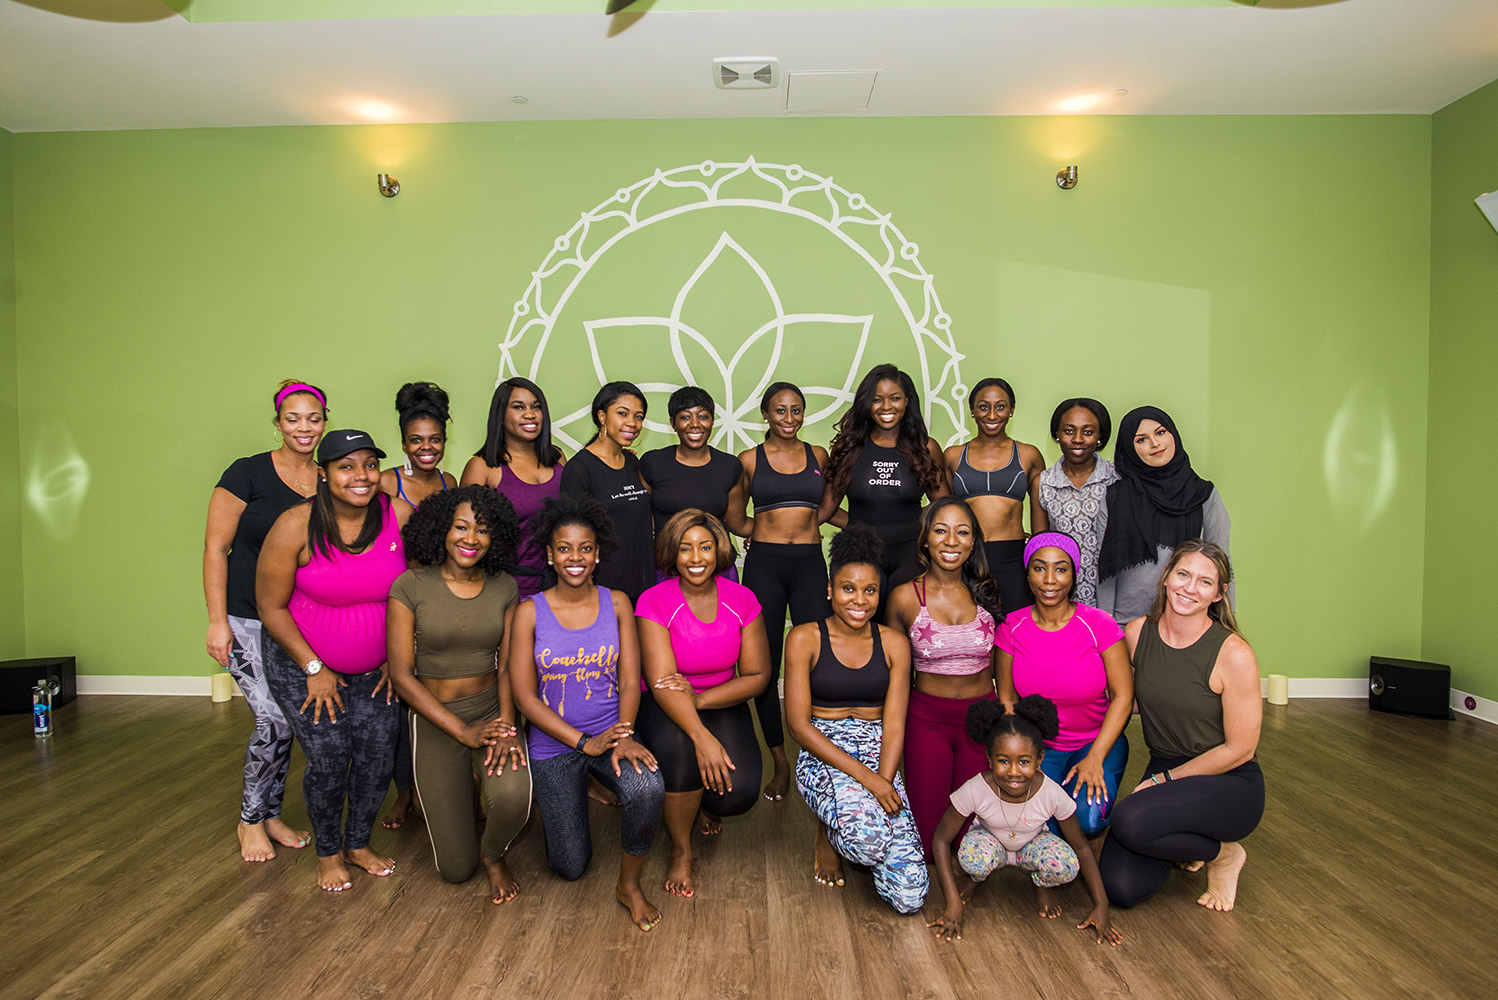 Yoga Experience with Titi's Passion hosted by Highland Yoga